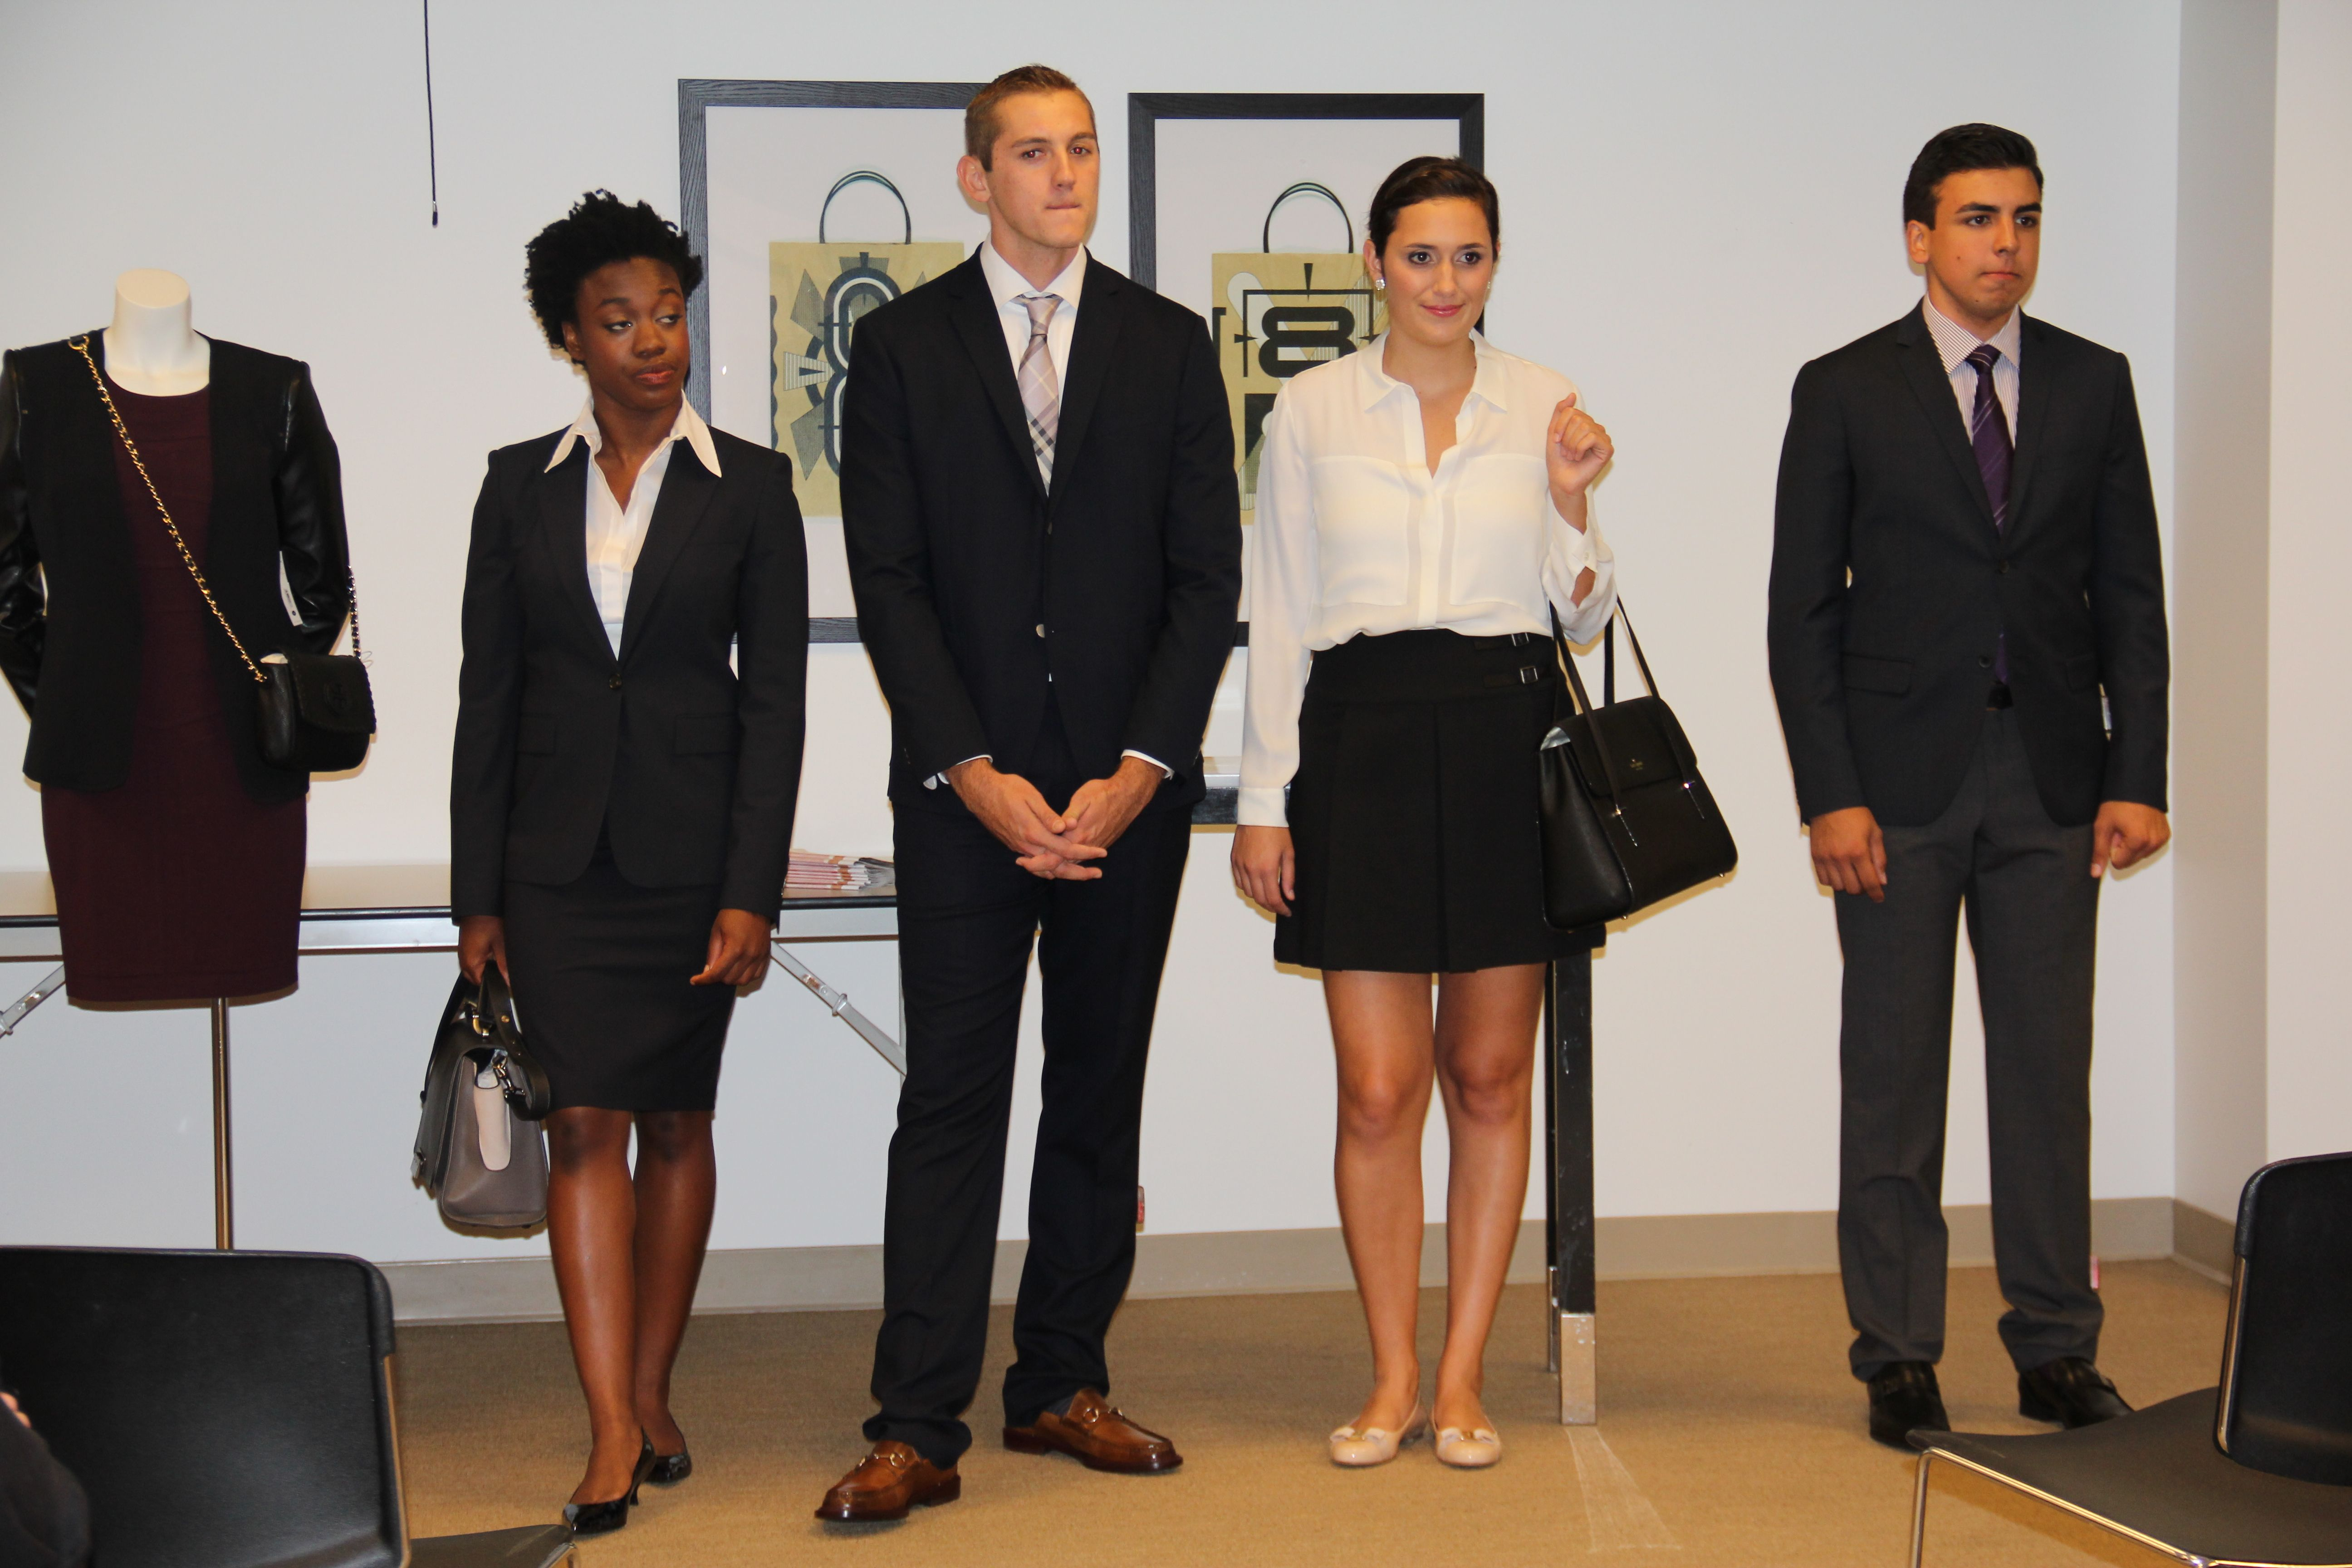 bloomingdales presents fashion your future event teaches vanguard university students how to dress for success in job interviews - How To Dress For An Interview Success